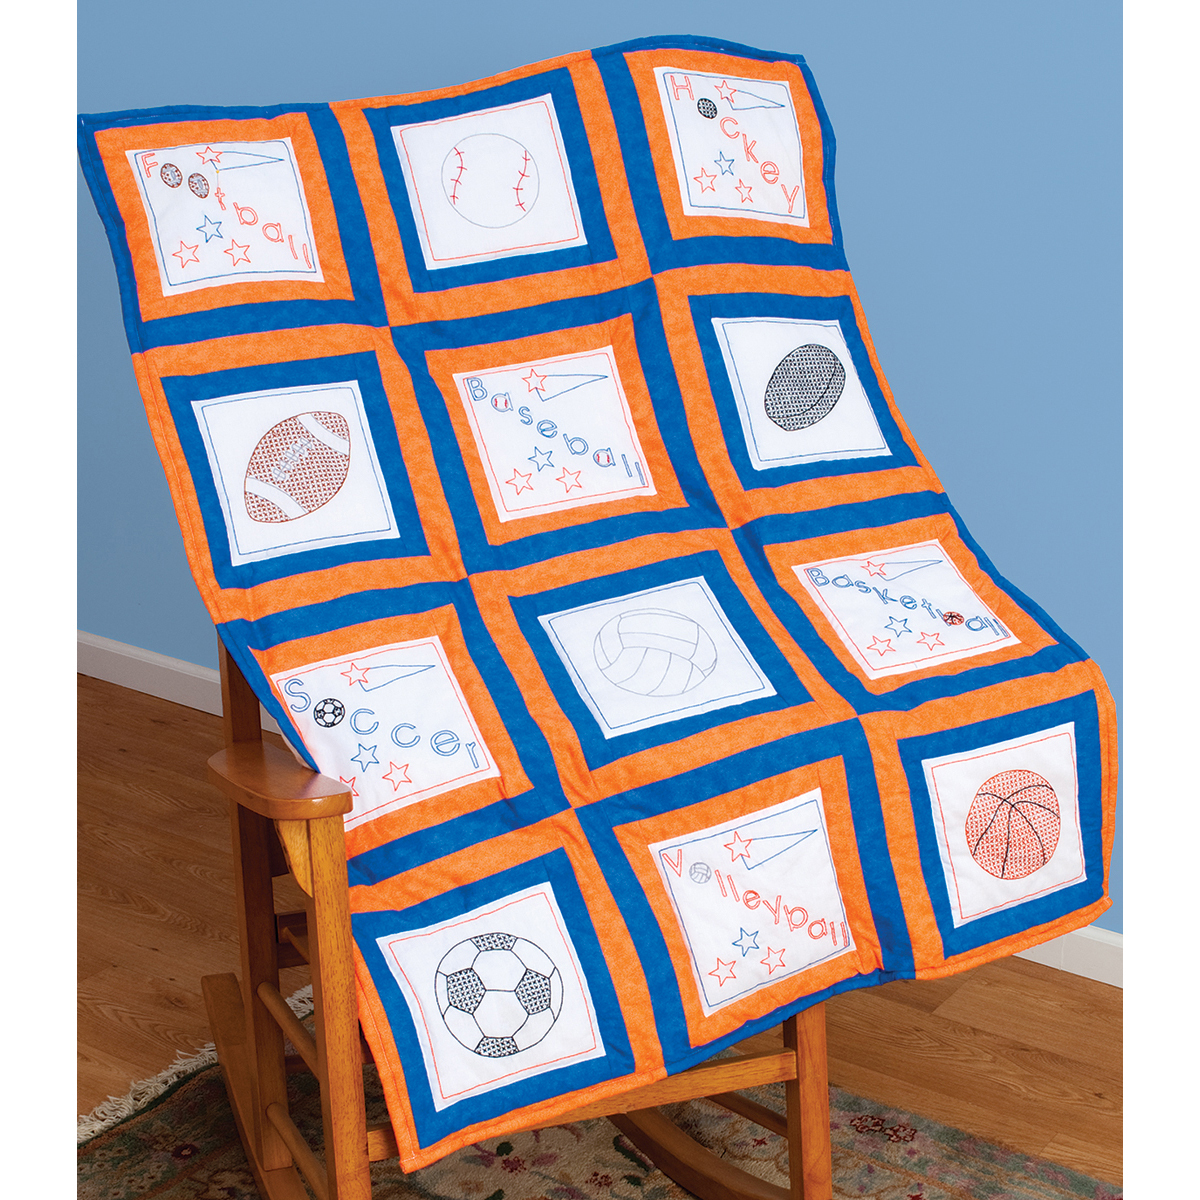 Themed Stamped White Quilt Blocks 9 Inch X 9 Inch 12/Pkg-Sports